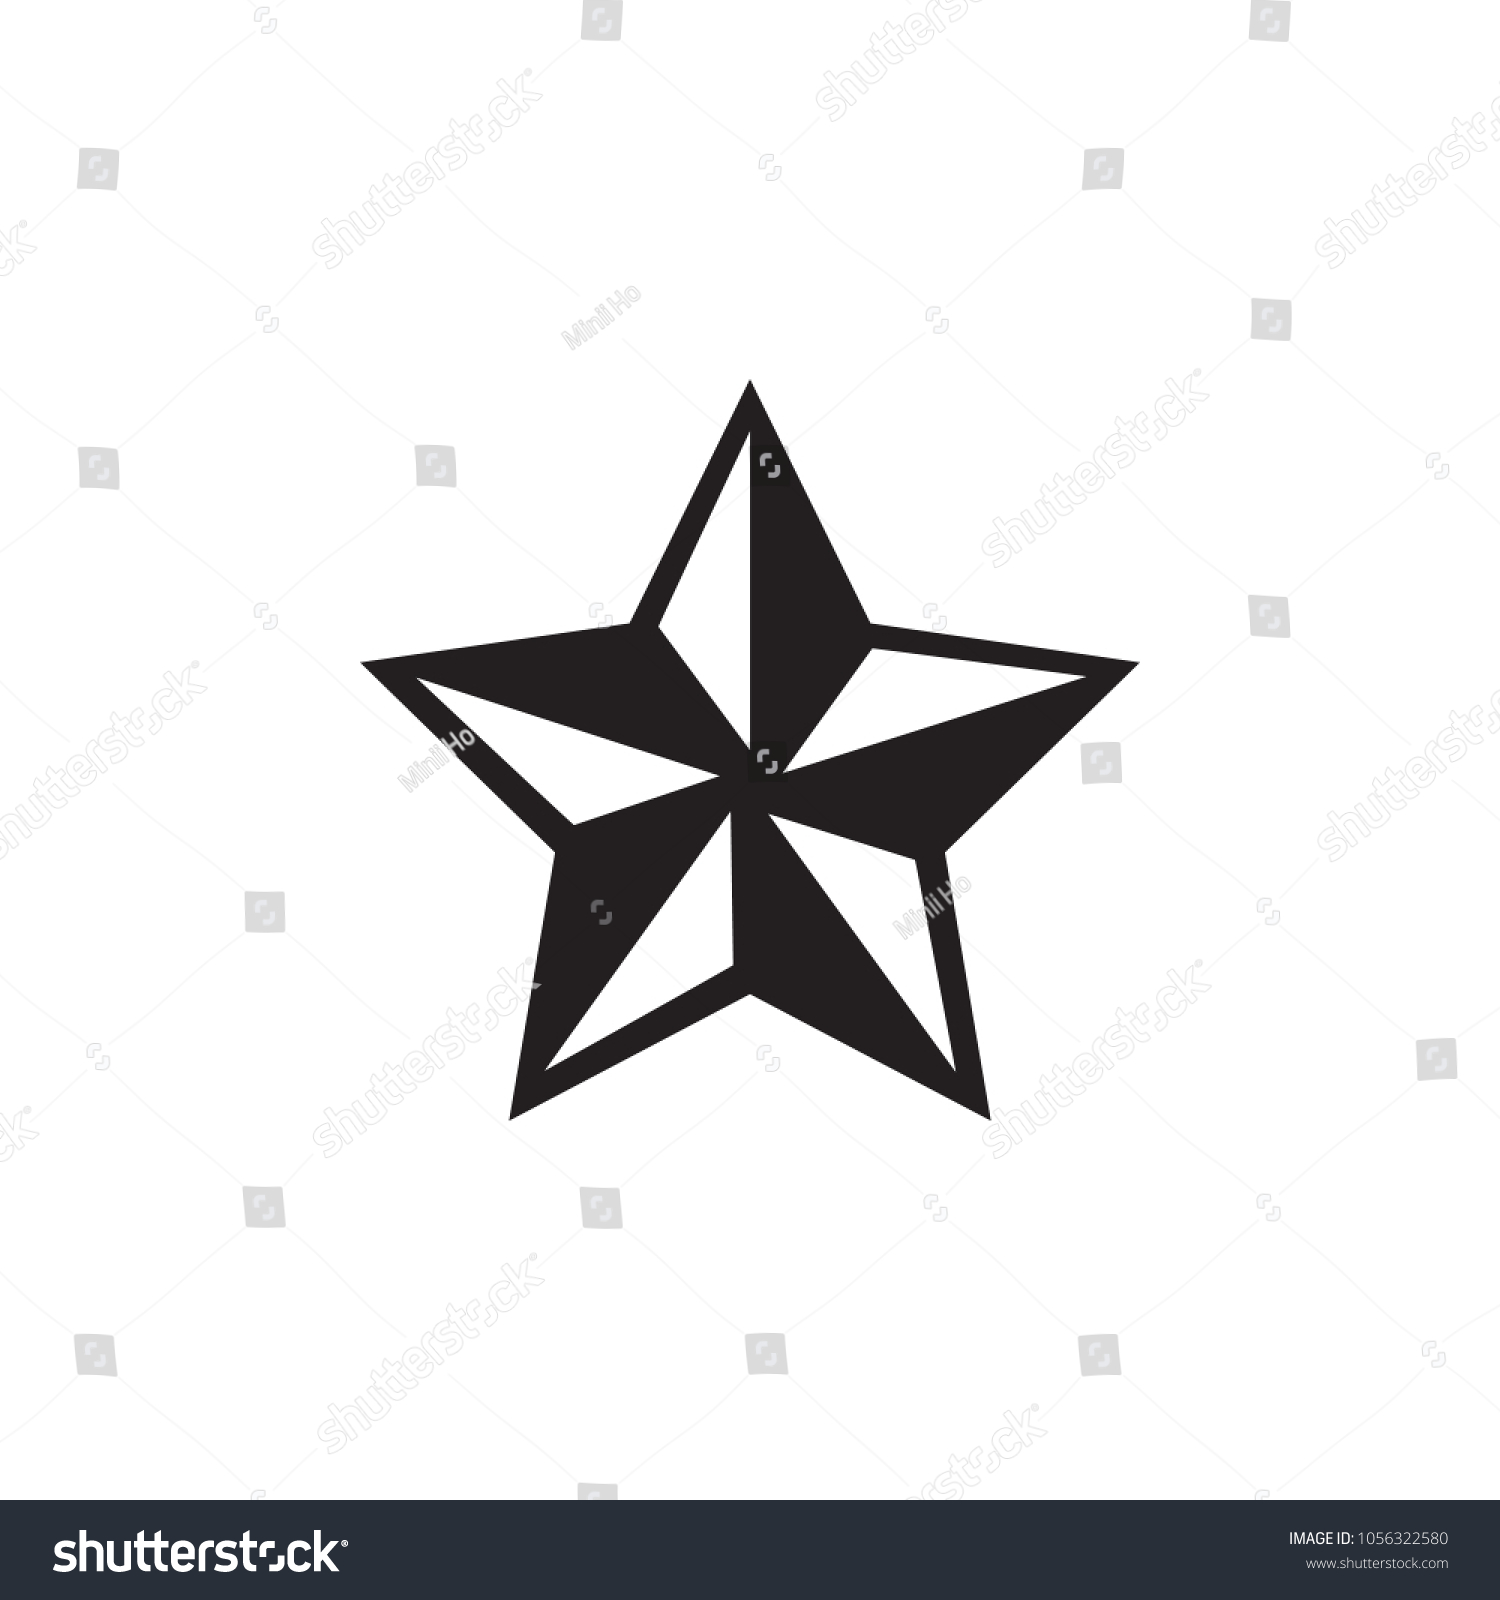 black white nautical star stock vector 1056322580 shutterstock rh shutterstock com nautical star vector free